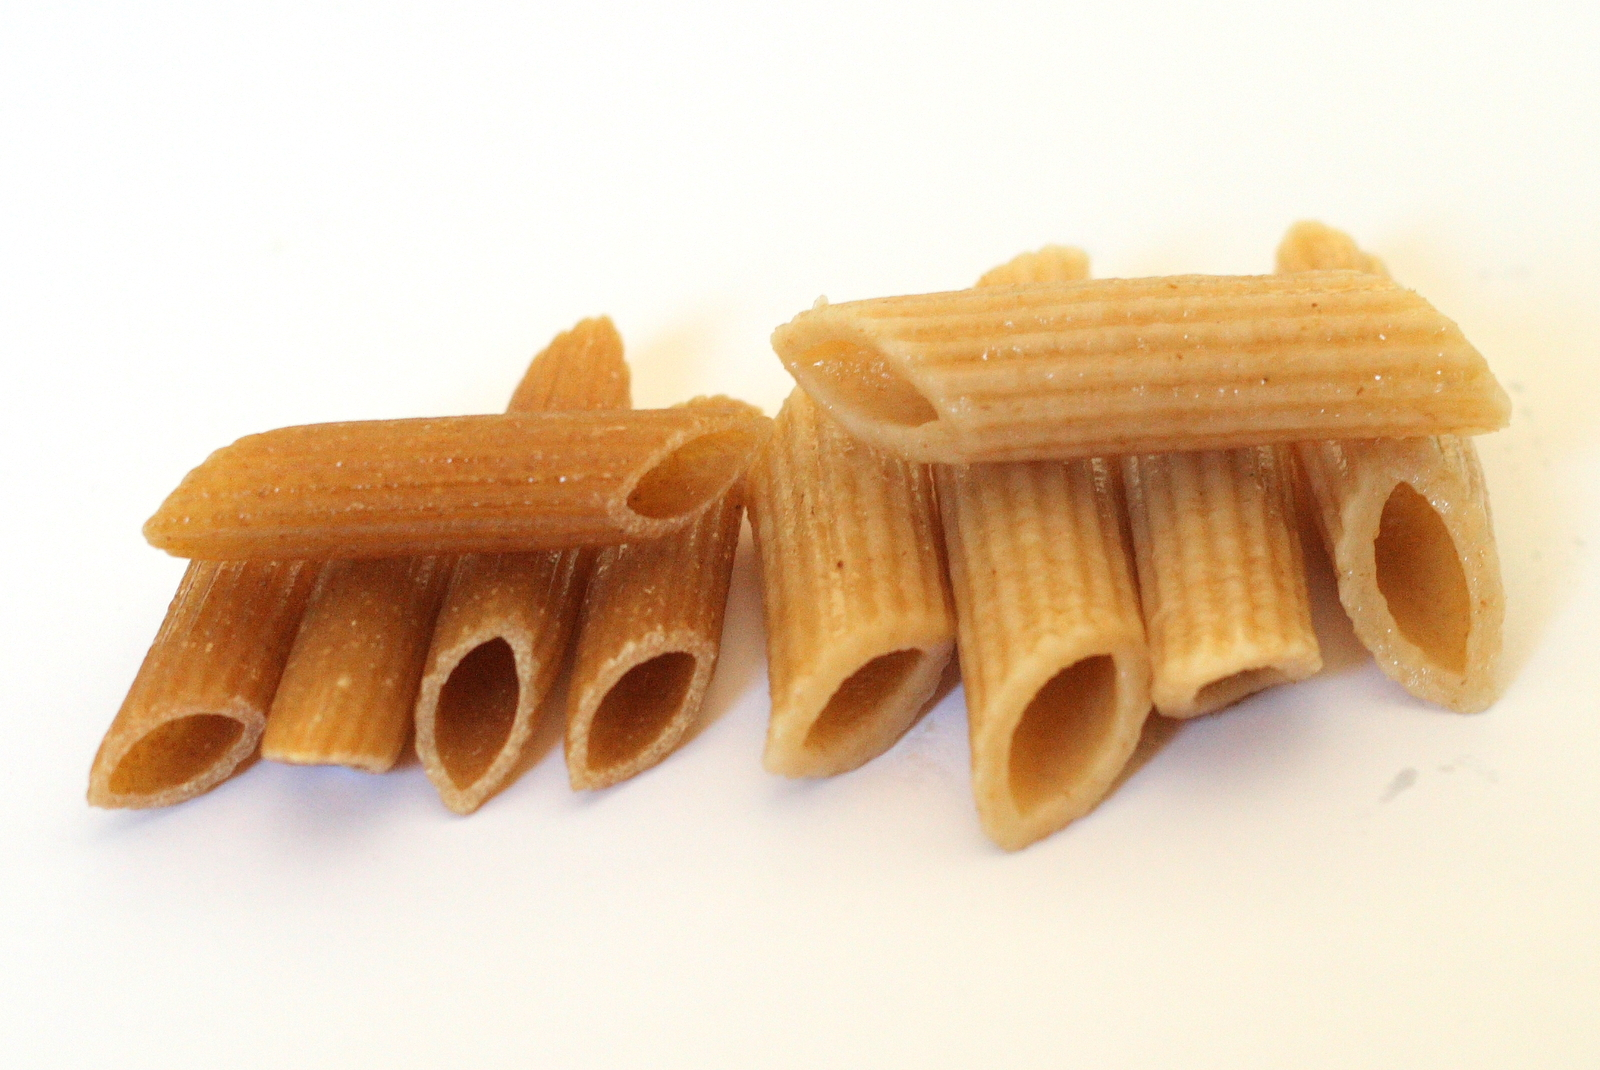 http://upload.wikimedia.org/wikipedia/commons/c/c3/Whole_wheat_penne,_cooked_and_uncooked.jpg